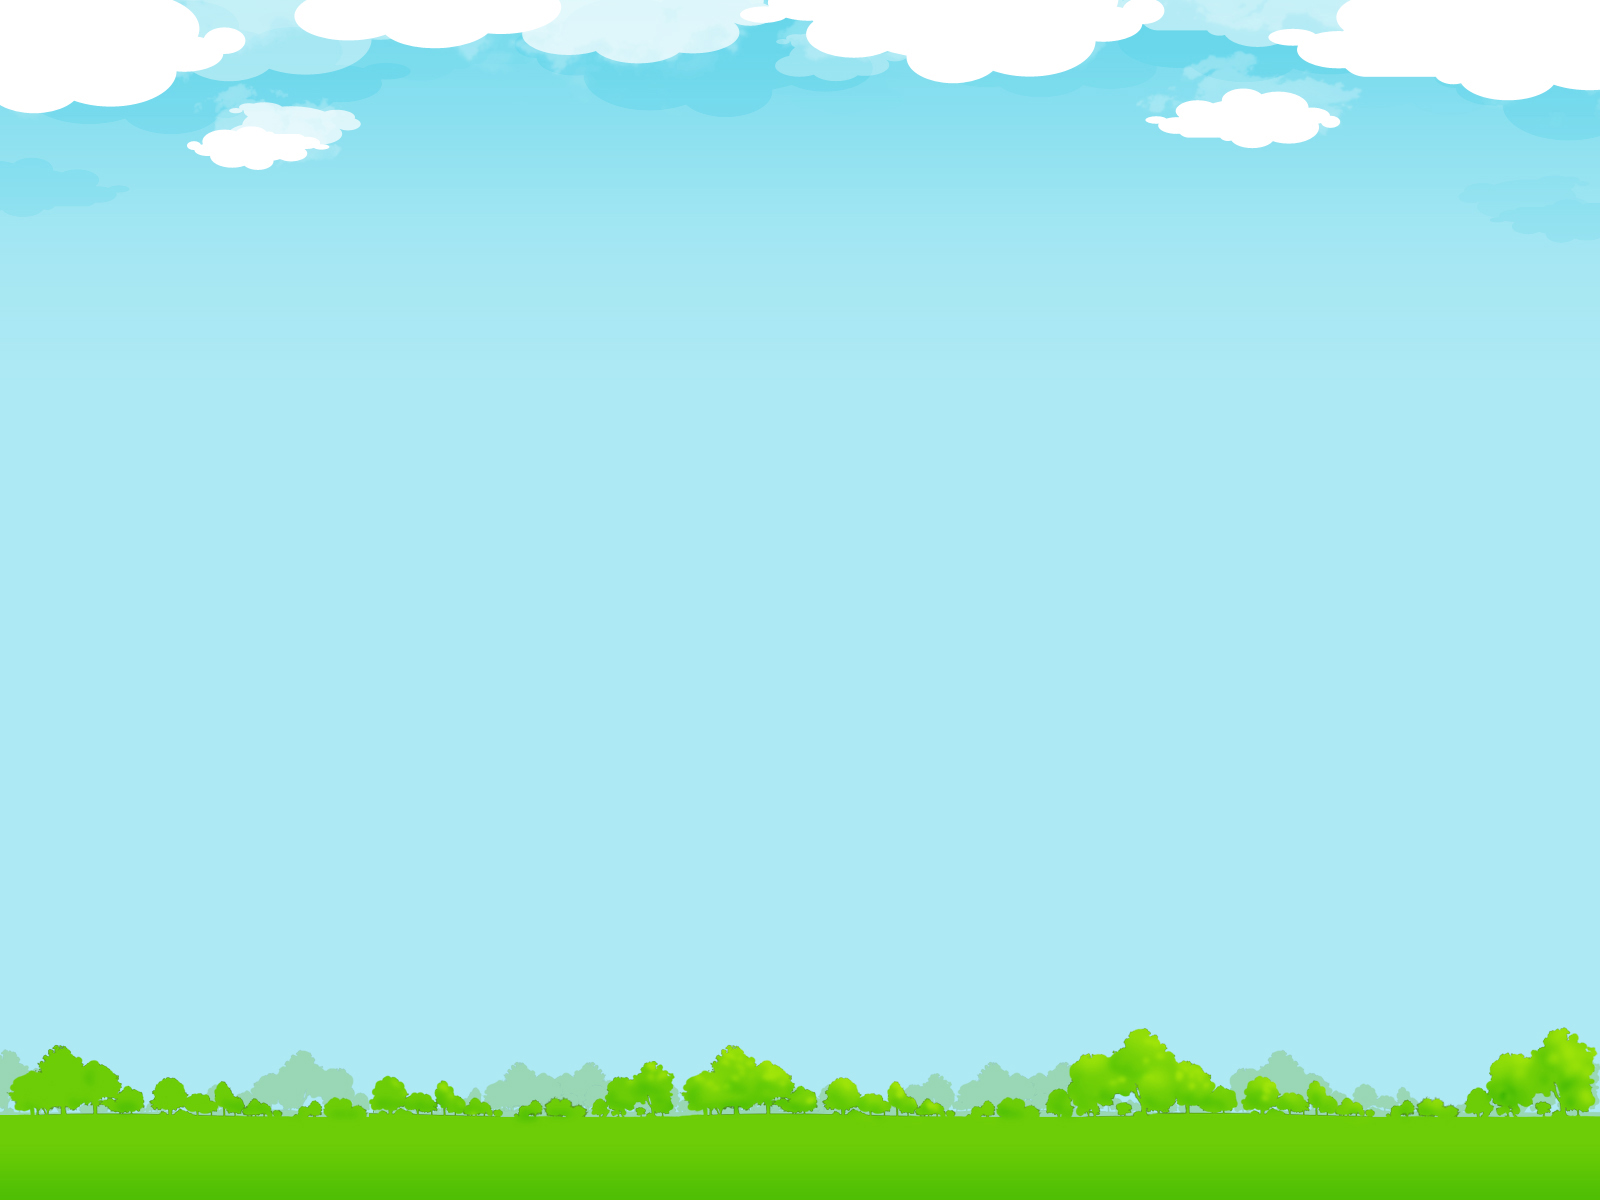 nature background for kids clipart 20 free Cliparts ...